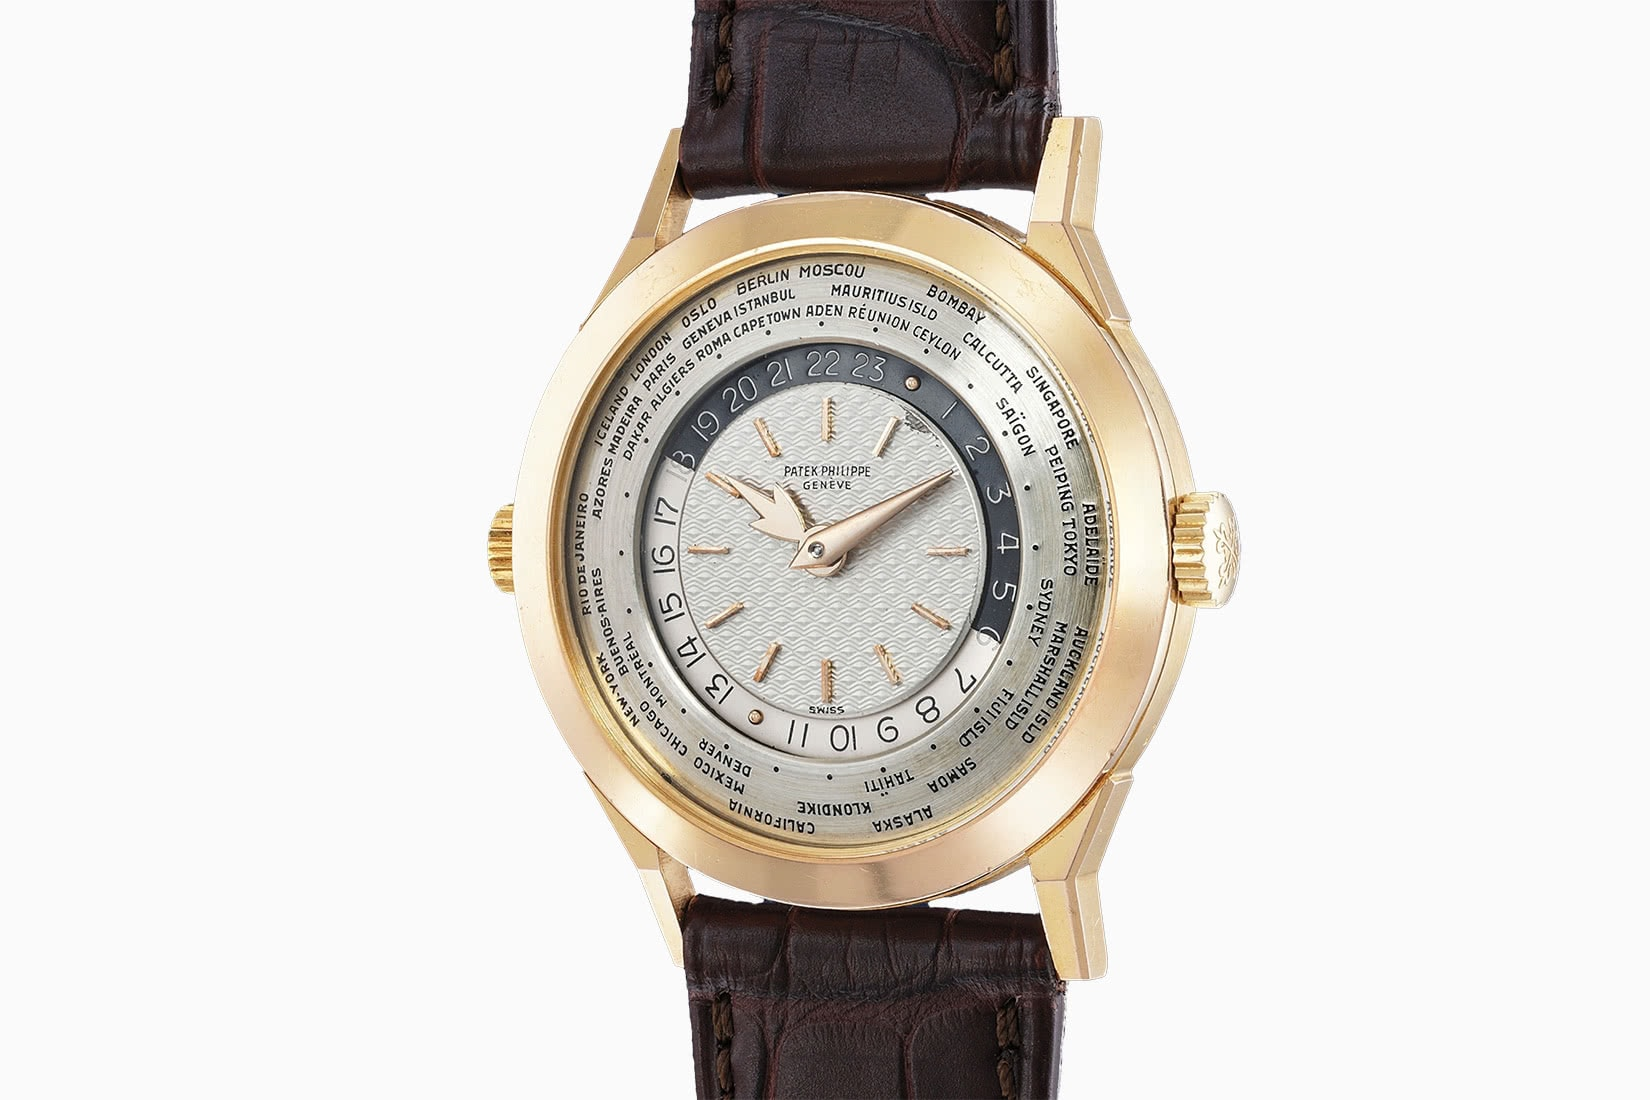 most expensive watches patek philippe worldtimer guilloche ref 2523 - Luxe Digital